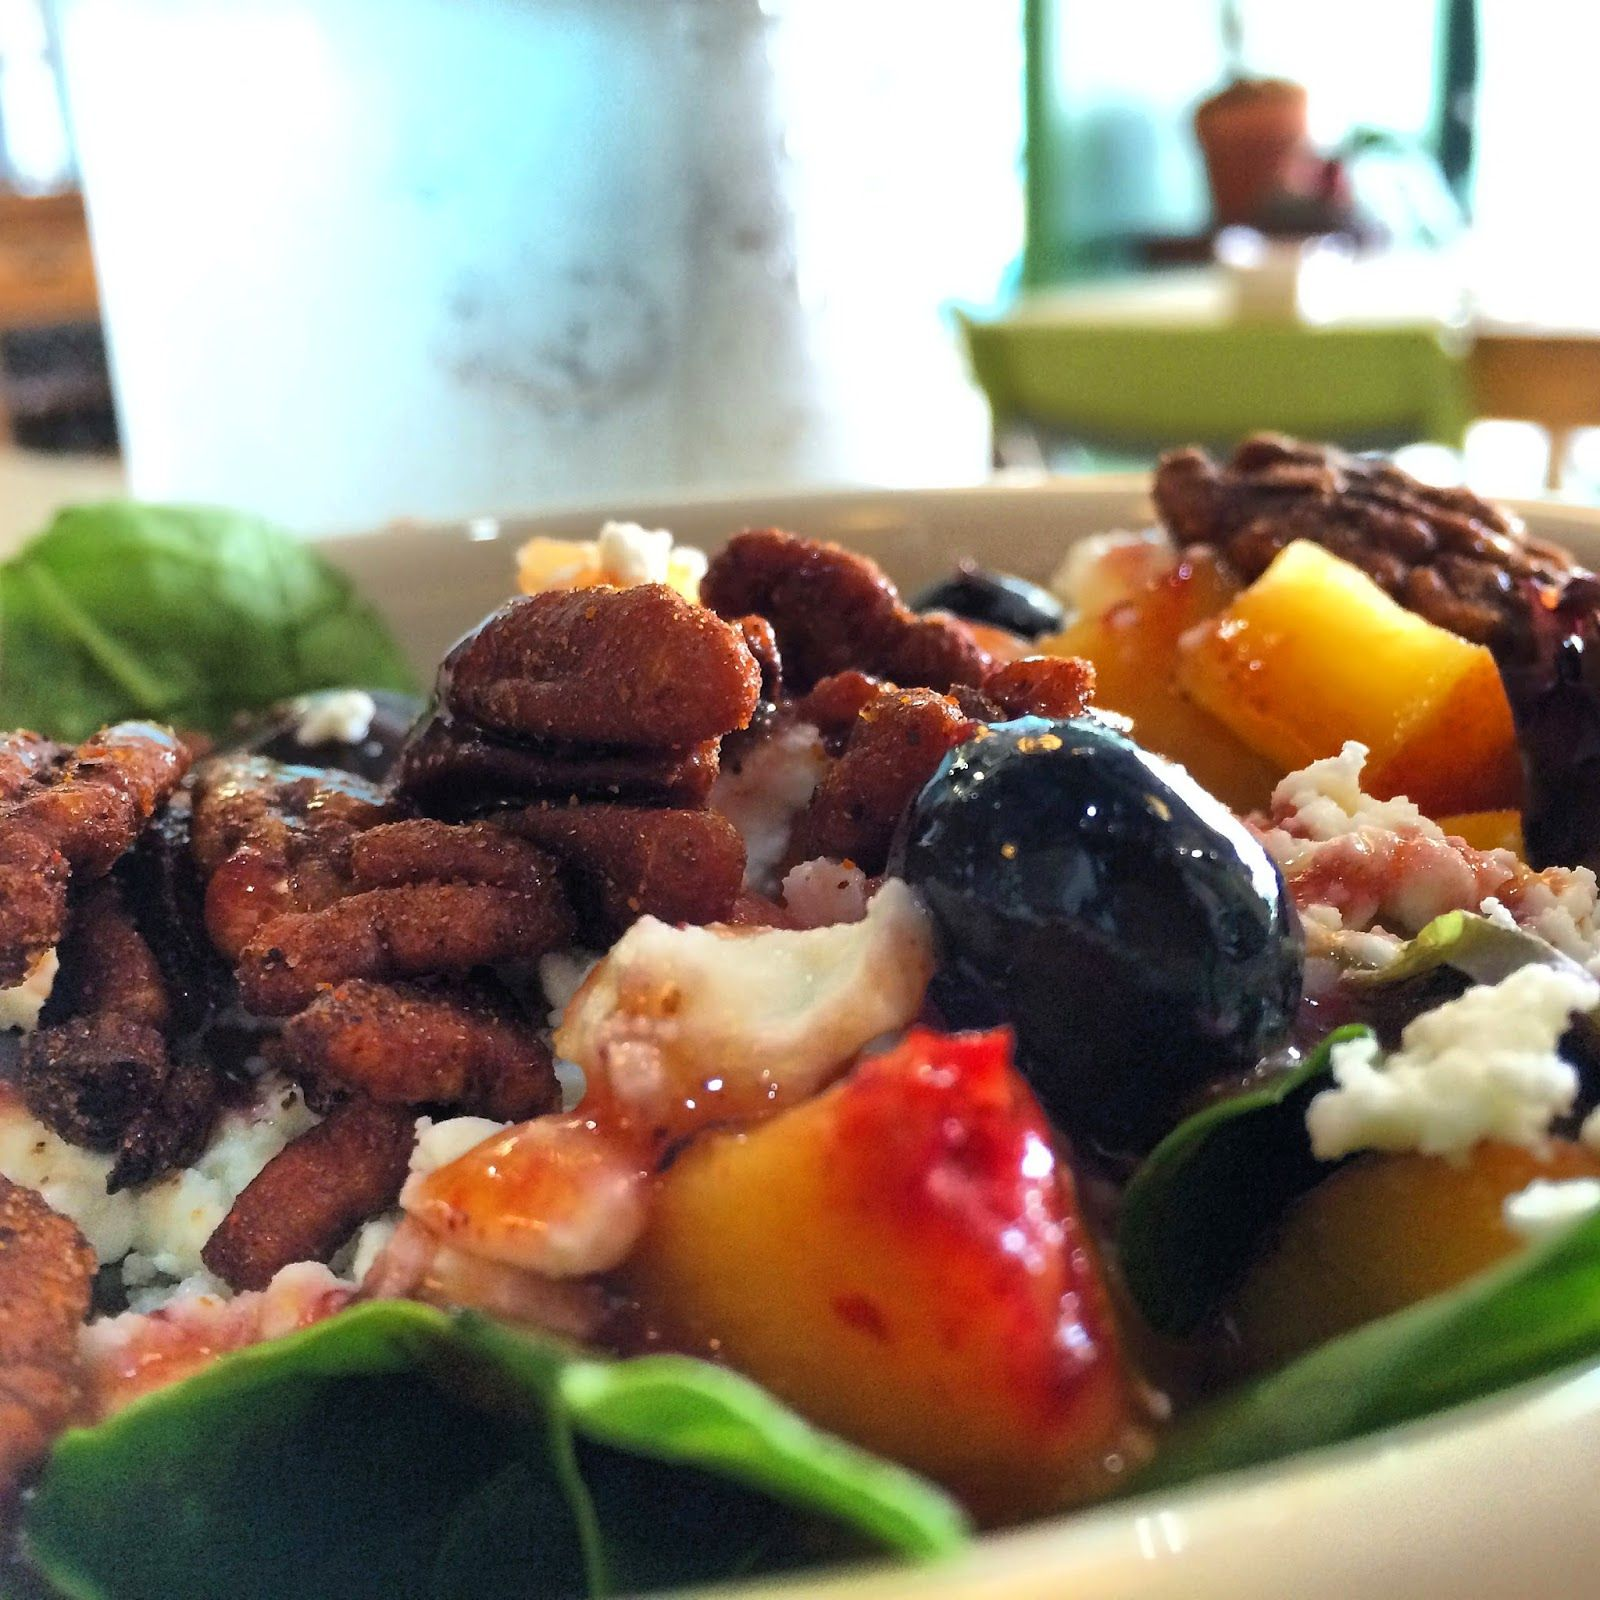 The peach and blueberry salad at MJ's Café 672 Jefferson Hwy, Baton Rouge, LA 70806